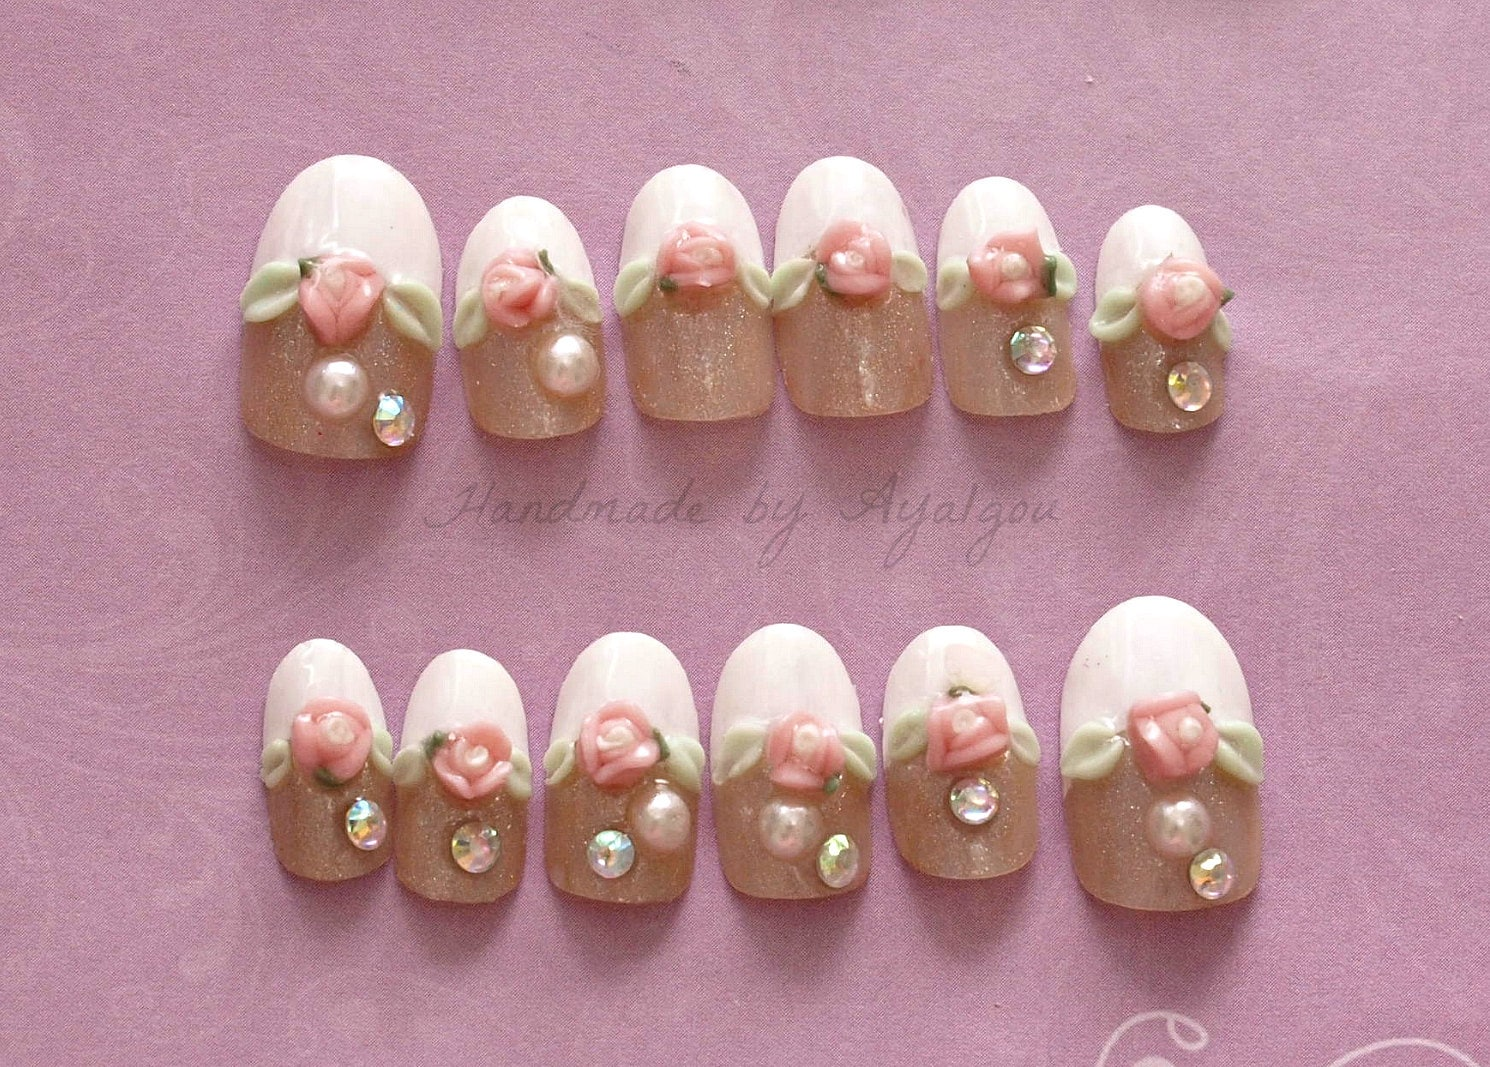 Lolita nail, fake nails, french tips, bridal nail, 3D nail, kawaii ...